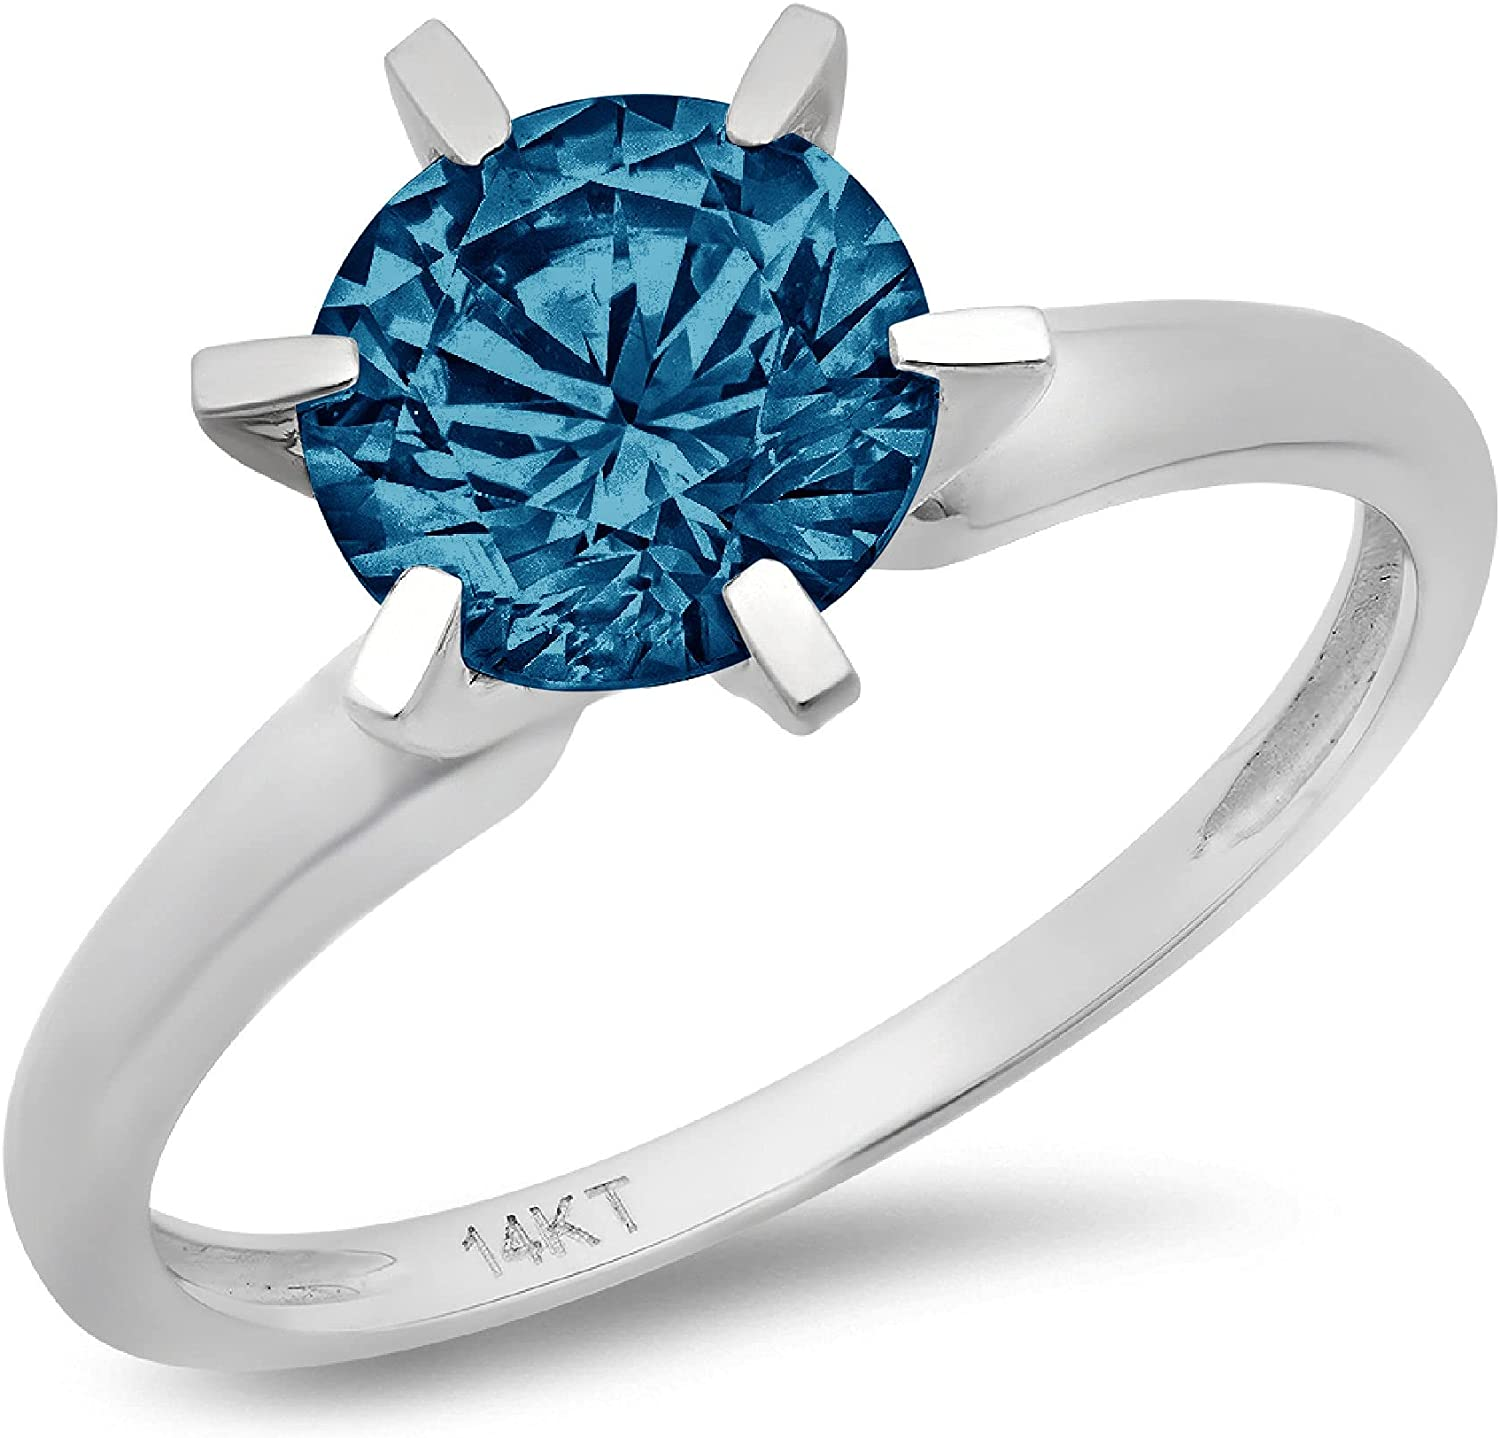 1.6 ct Indefinitely Brilliant Round Columbus Mall Cut Solitaire London Bl Stunning Flawless